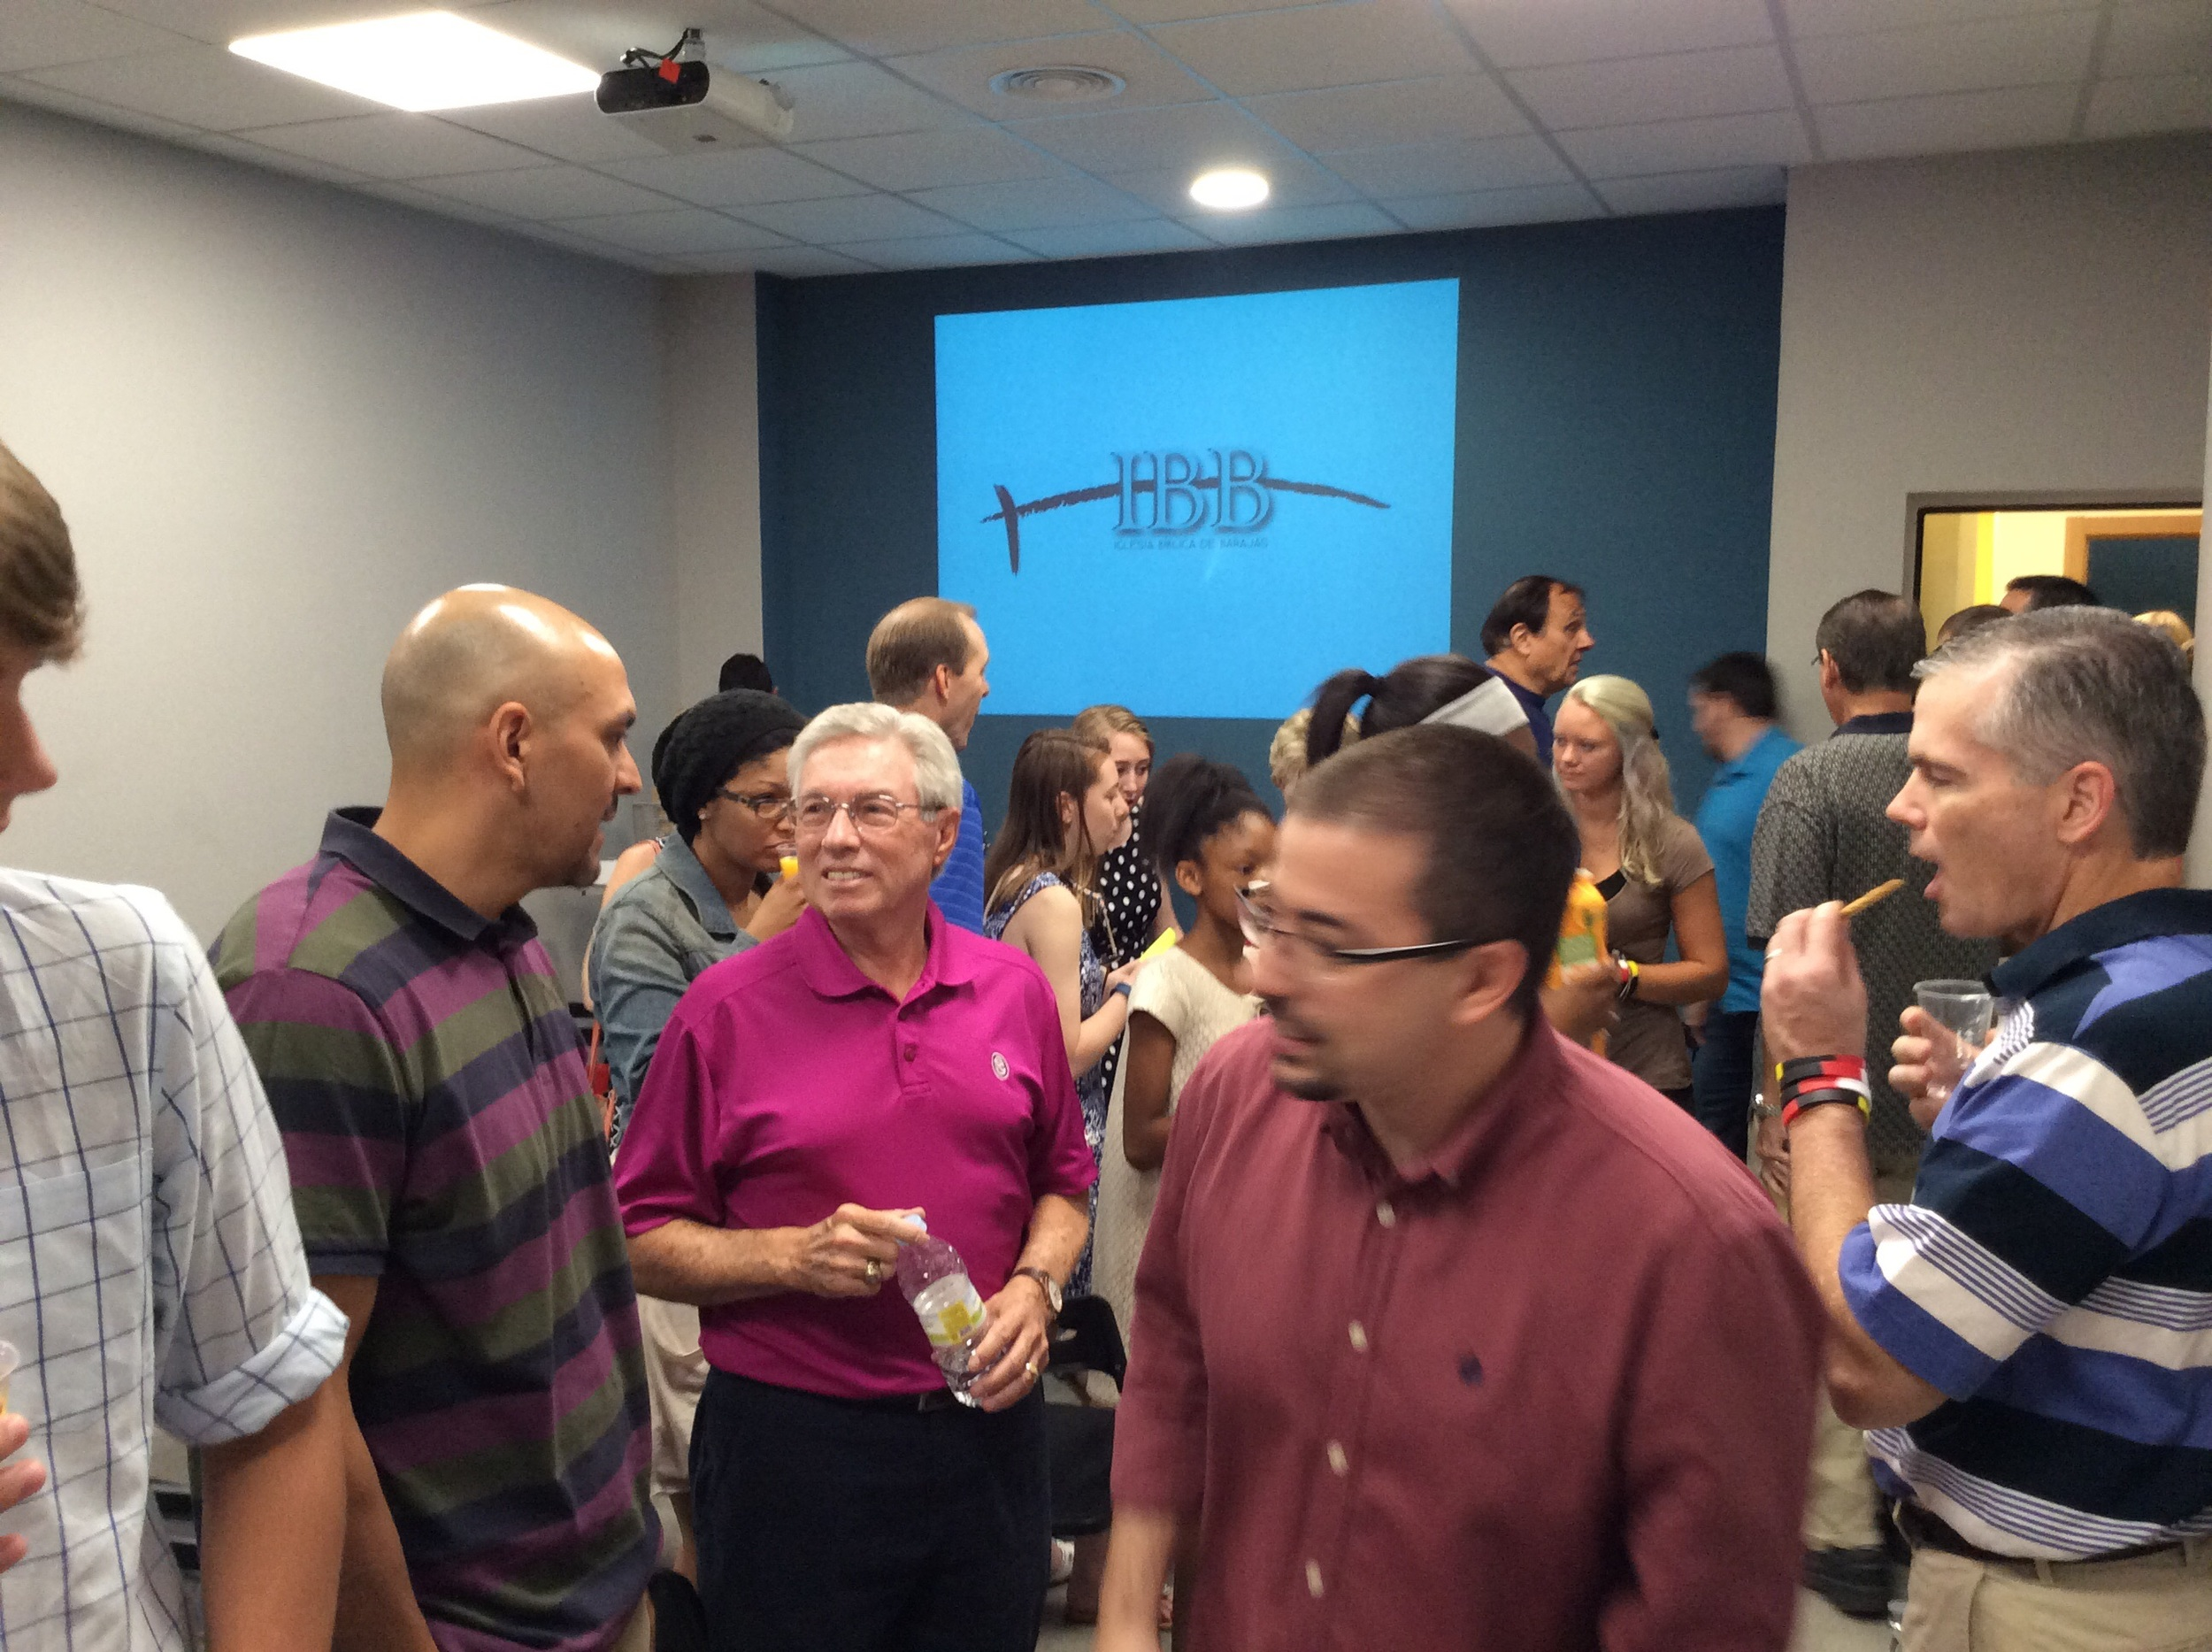 Fellowship time after the 9:30am service